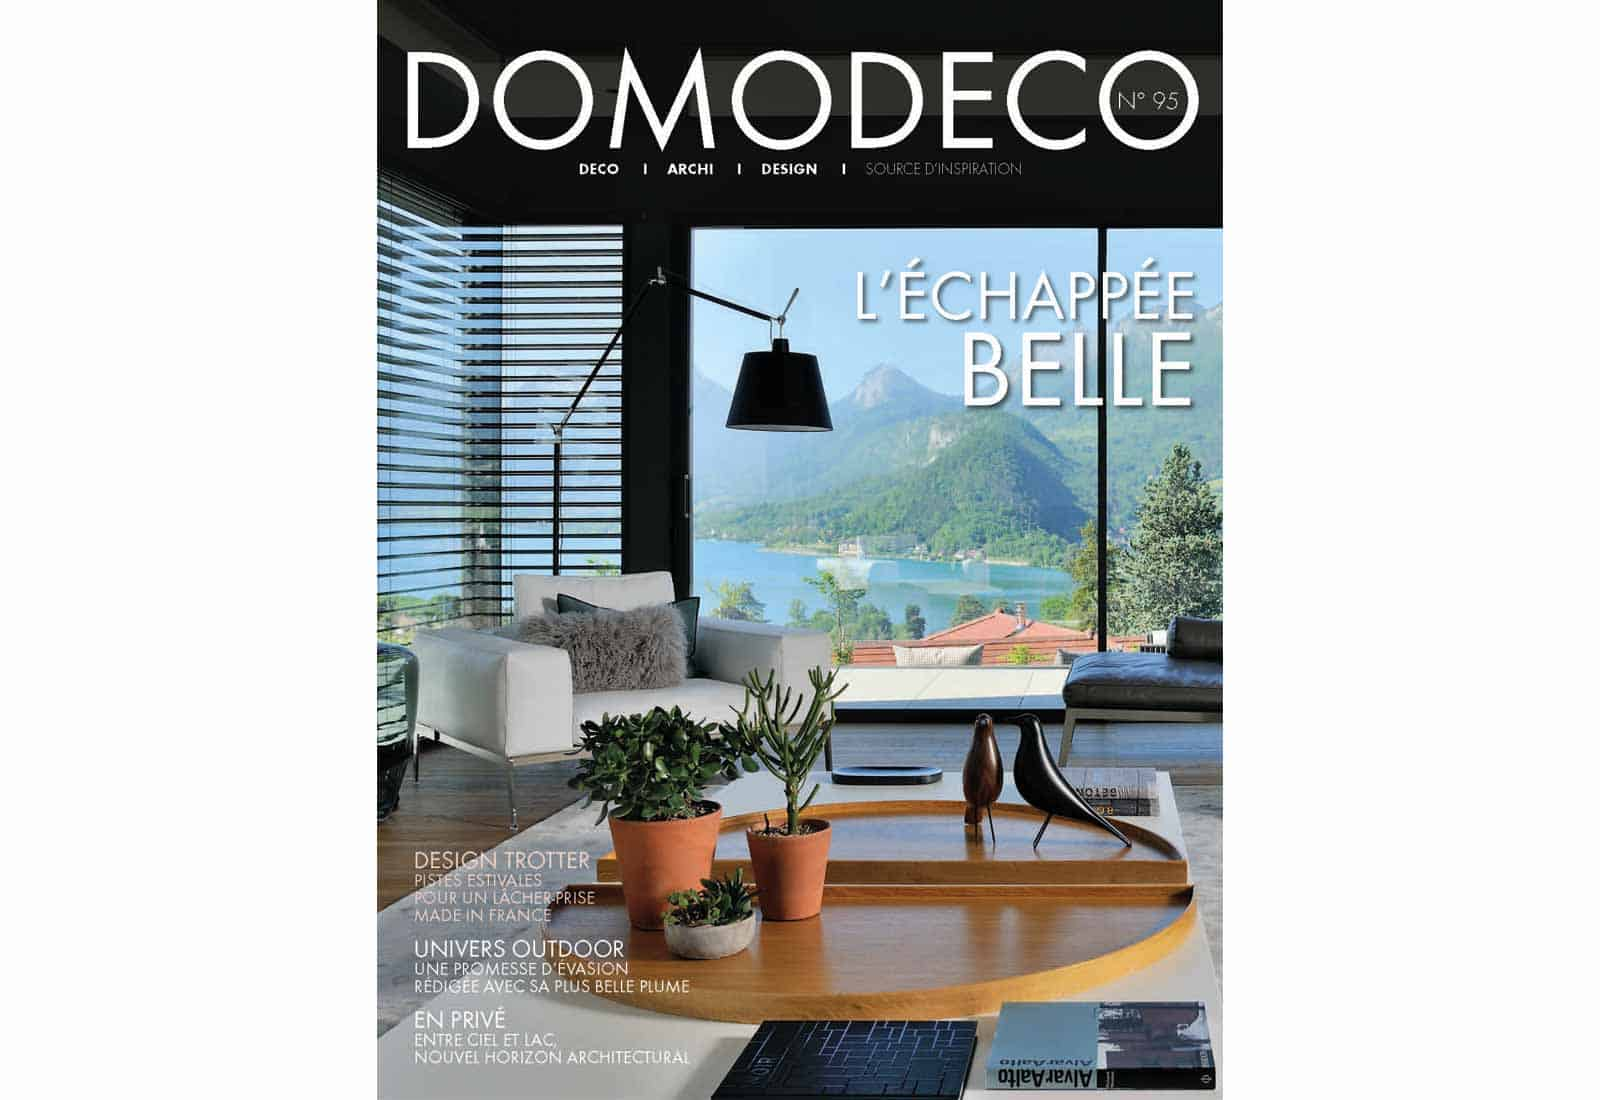 Domodeco article archidomo villa akila, Annecy Talloires - n95 couverture